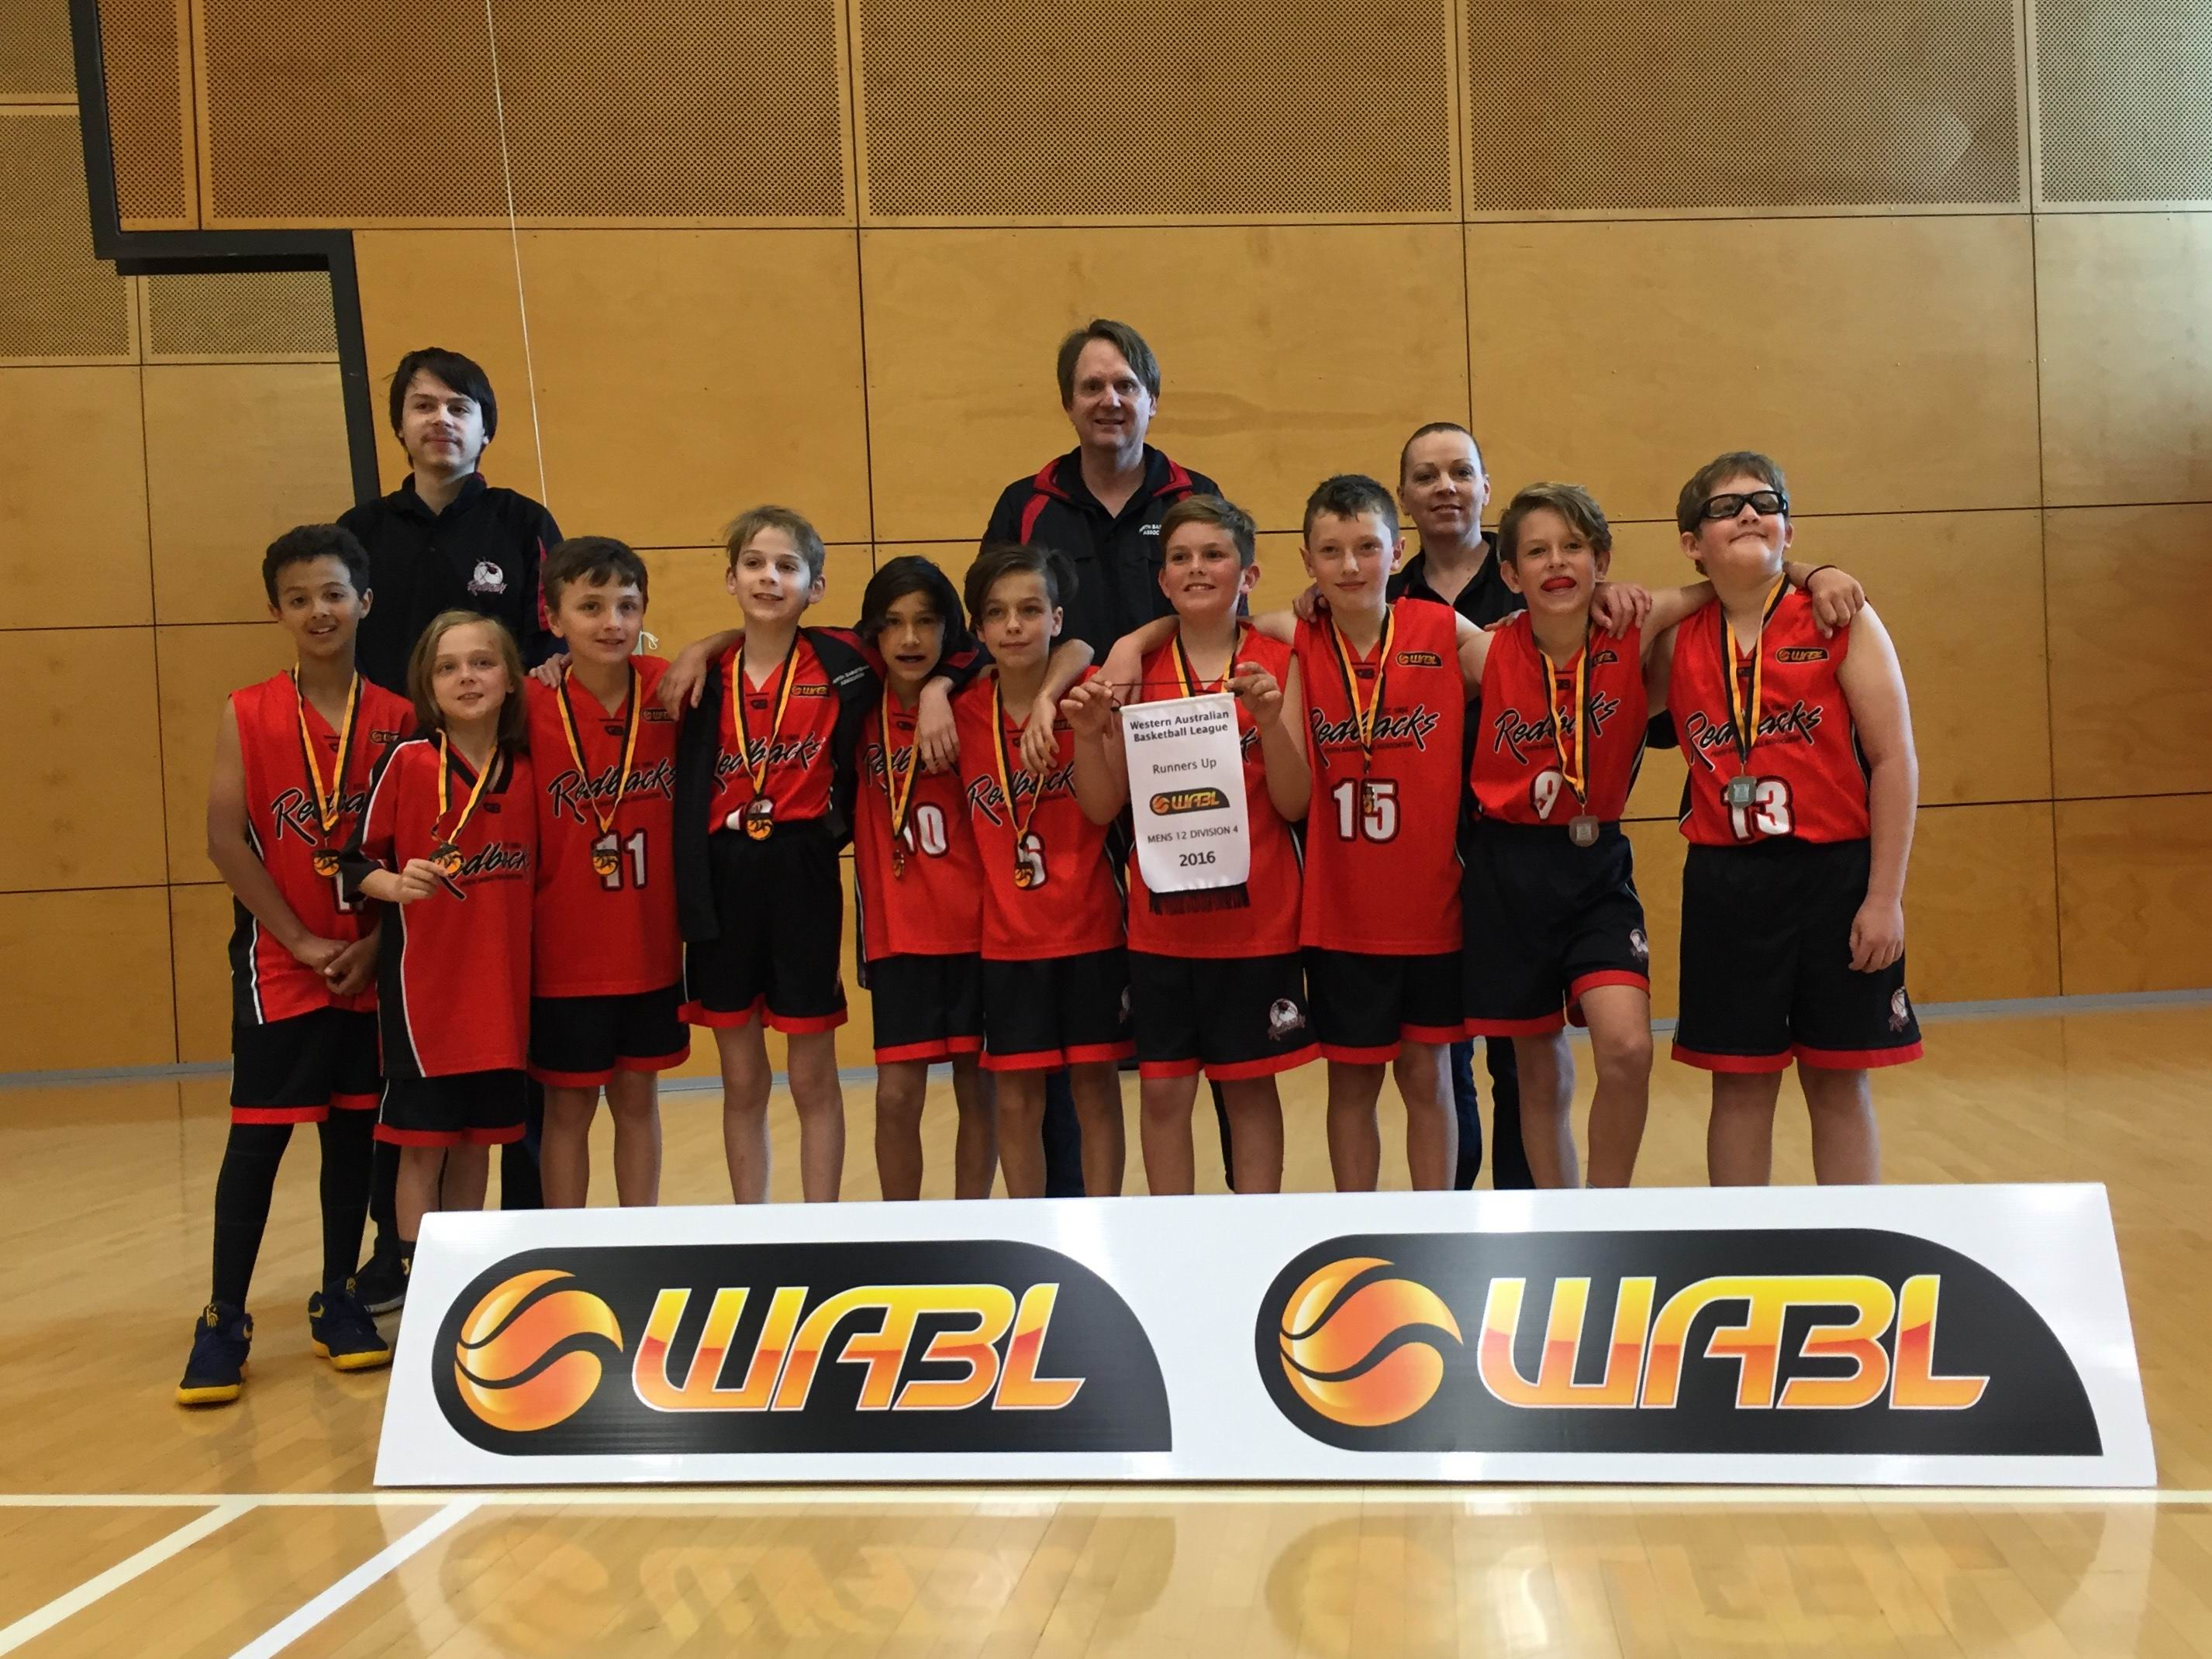 The Perth Redbacks under-12 4 boys team were runners-up after losing their grand final to the South West Slammers.